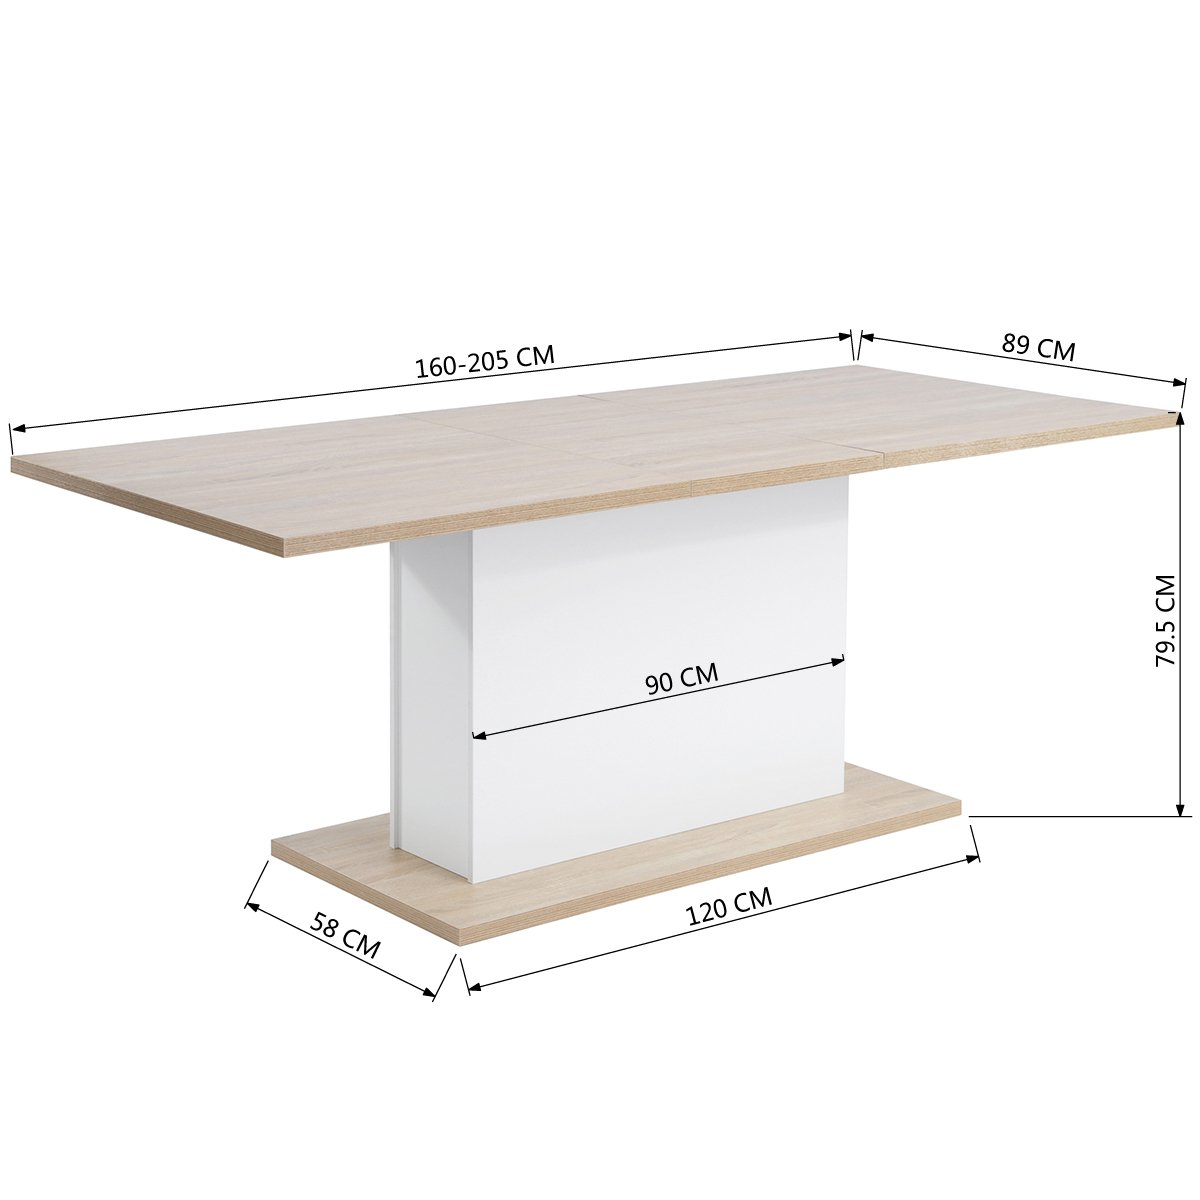 Extendable Rectangular Dining Table, Mltifunction Space Saving Wood Table (Extendable Beech Table) by HOMY CASA (Image #4)